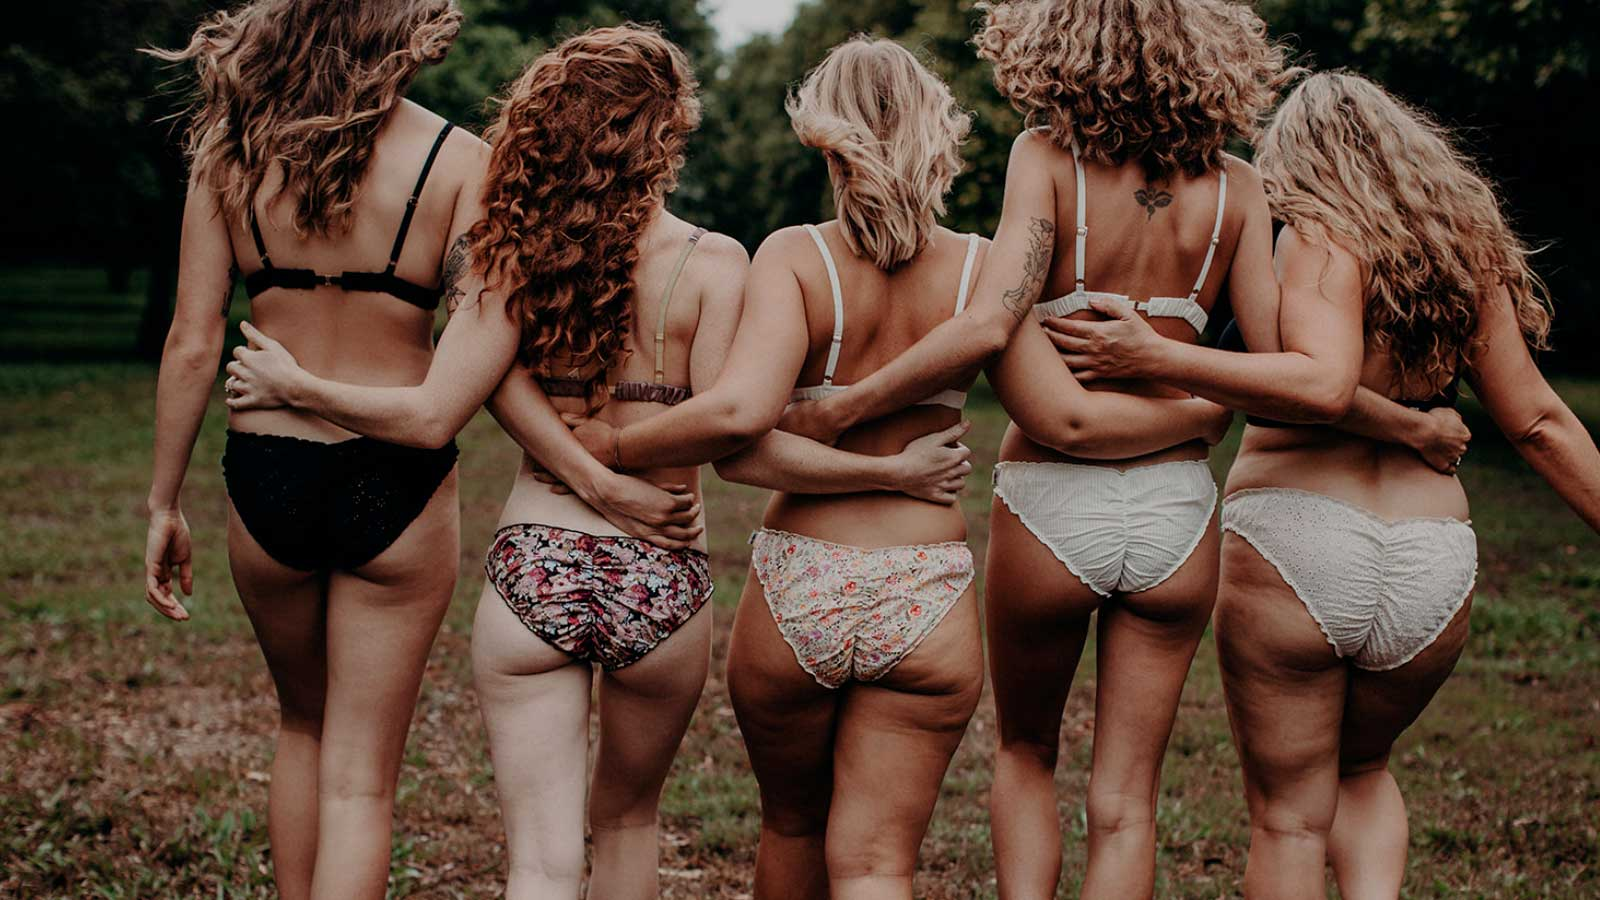 ruffle knickers on inclusive group of women